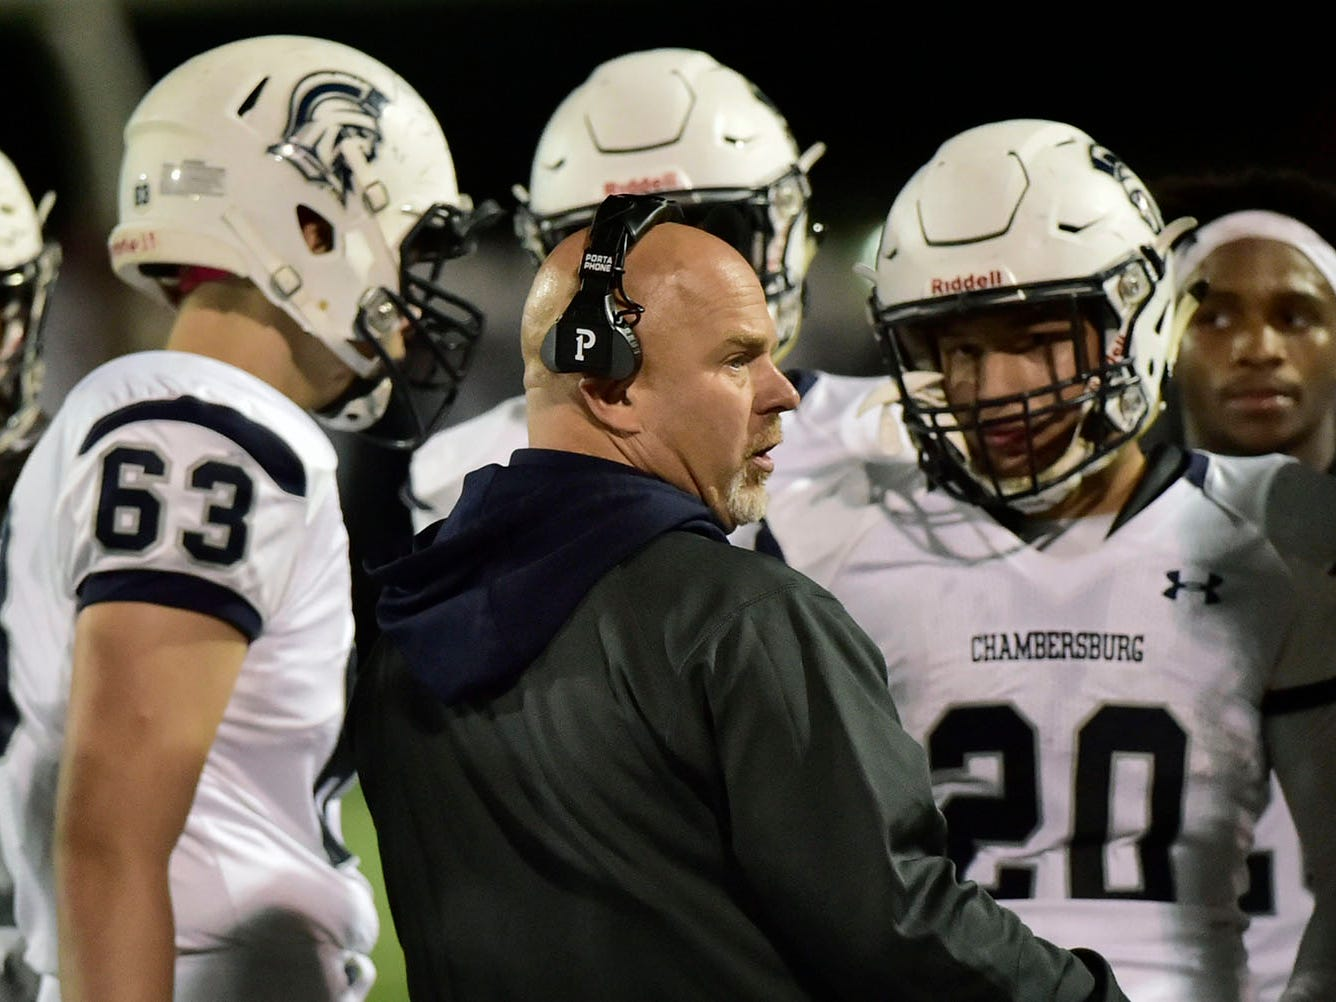 Chambersburg coach Mark Luther talks to players during a time out. Chambersburg Trojans jumped ahead of Central Dauphin East to win 26-20 in PIAA football on Friday, October 5, 2018.